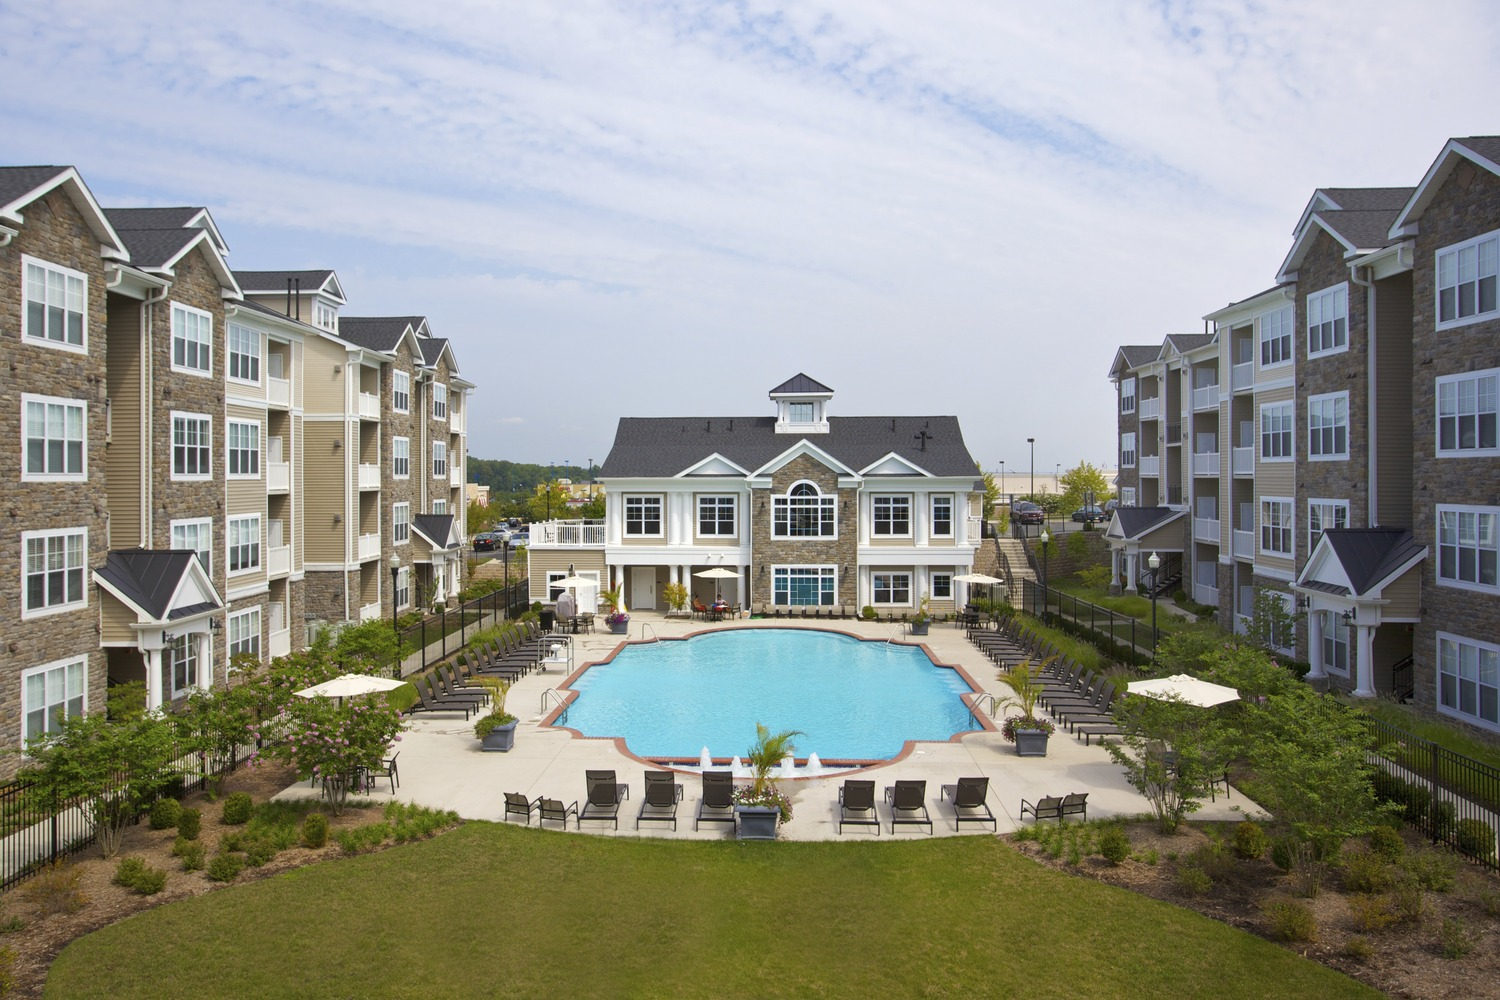 CBG builds The Elms at Stoney Run Village, a 390 Apartment Homes in Hanover, MD